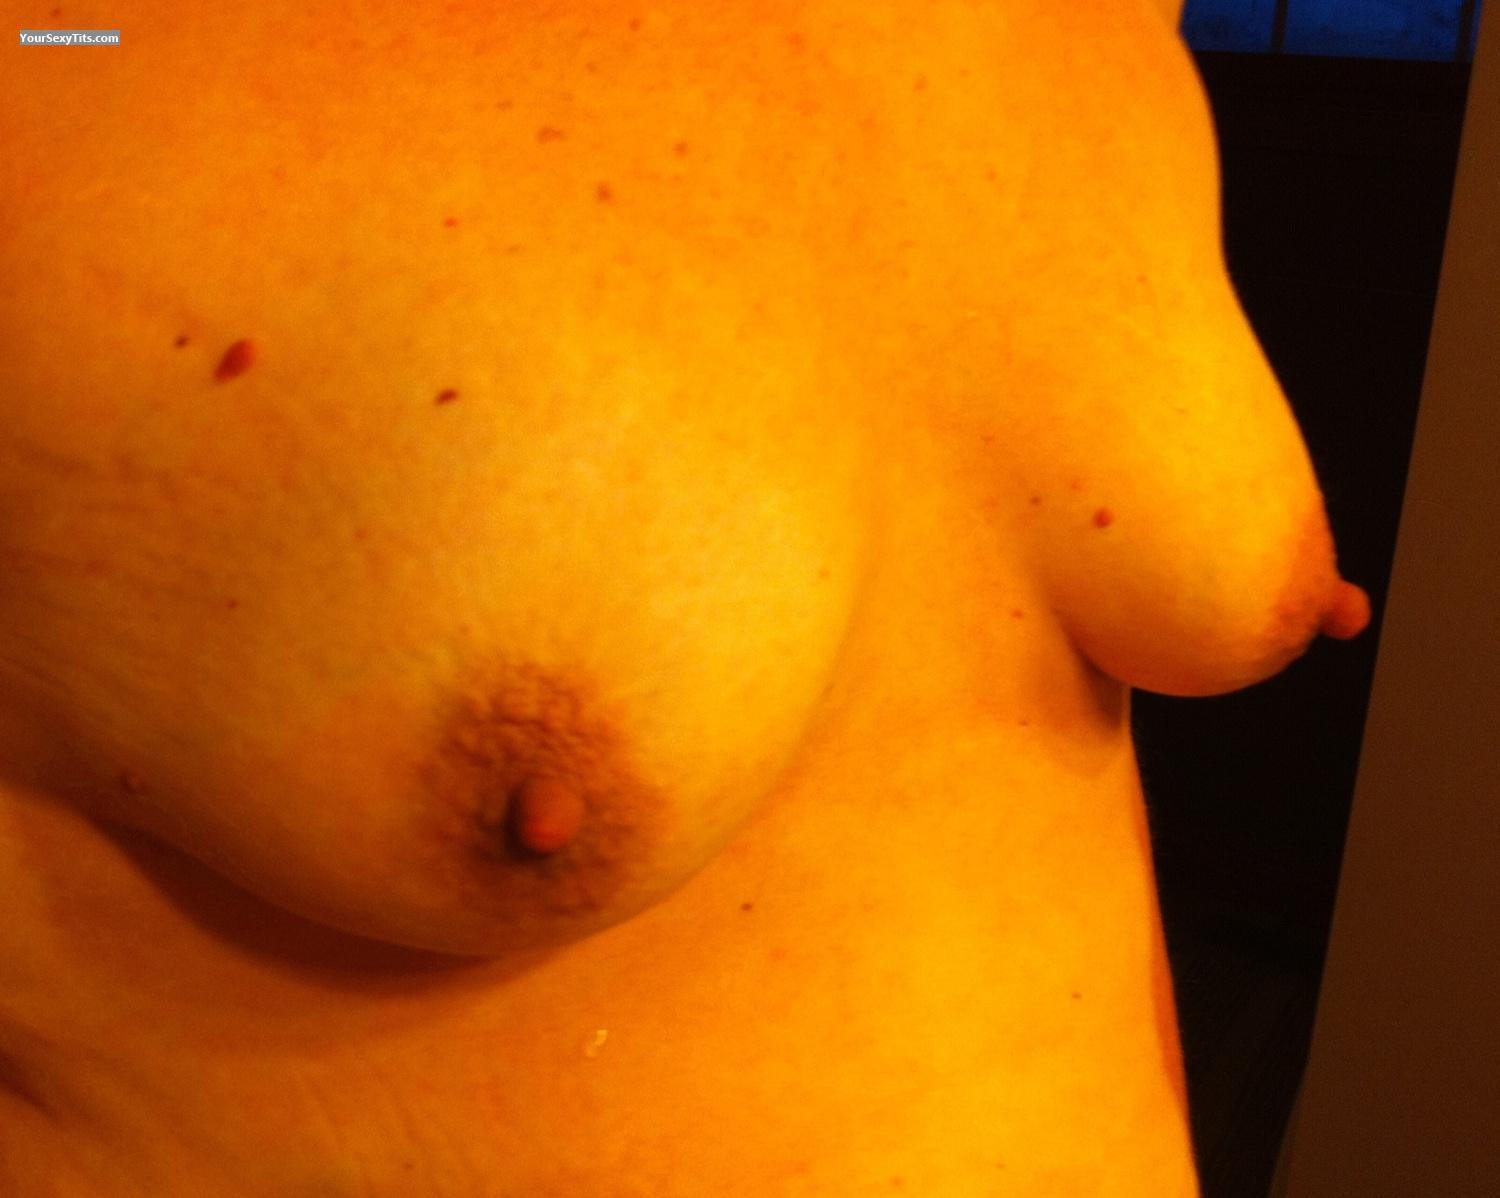 Tit Flash: Small Tits By IPhone - Sarah from United States